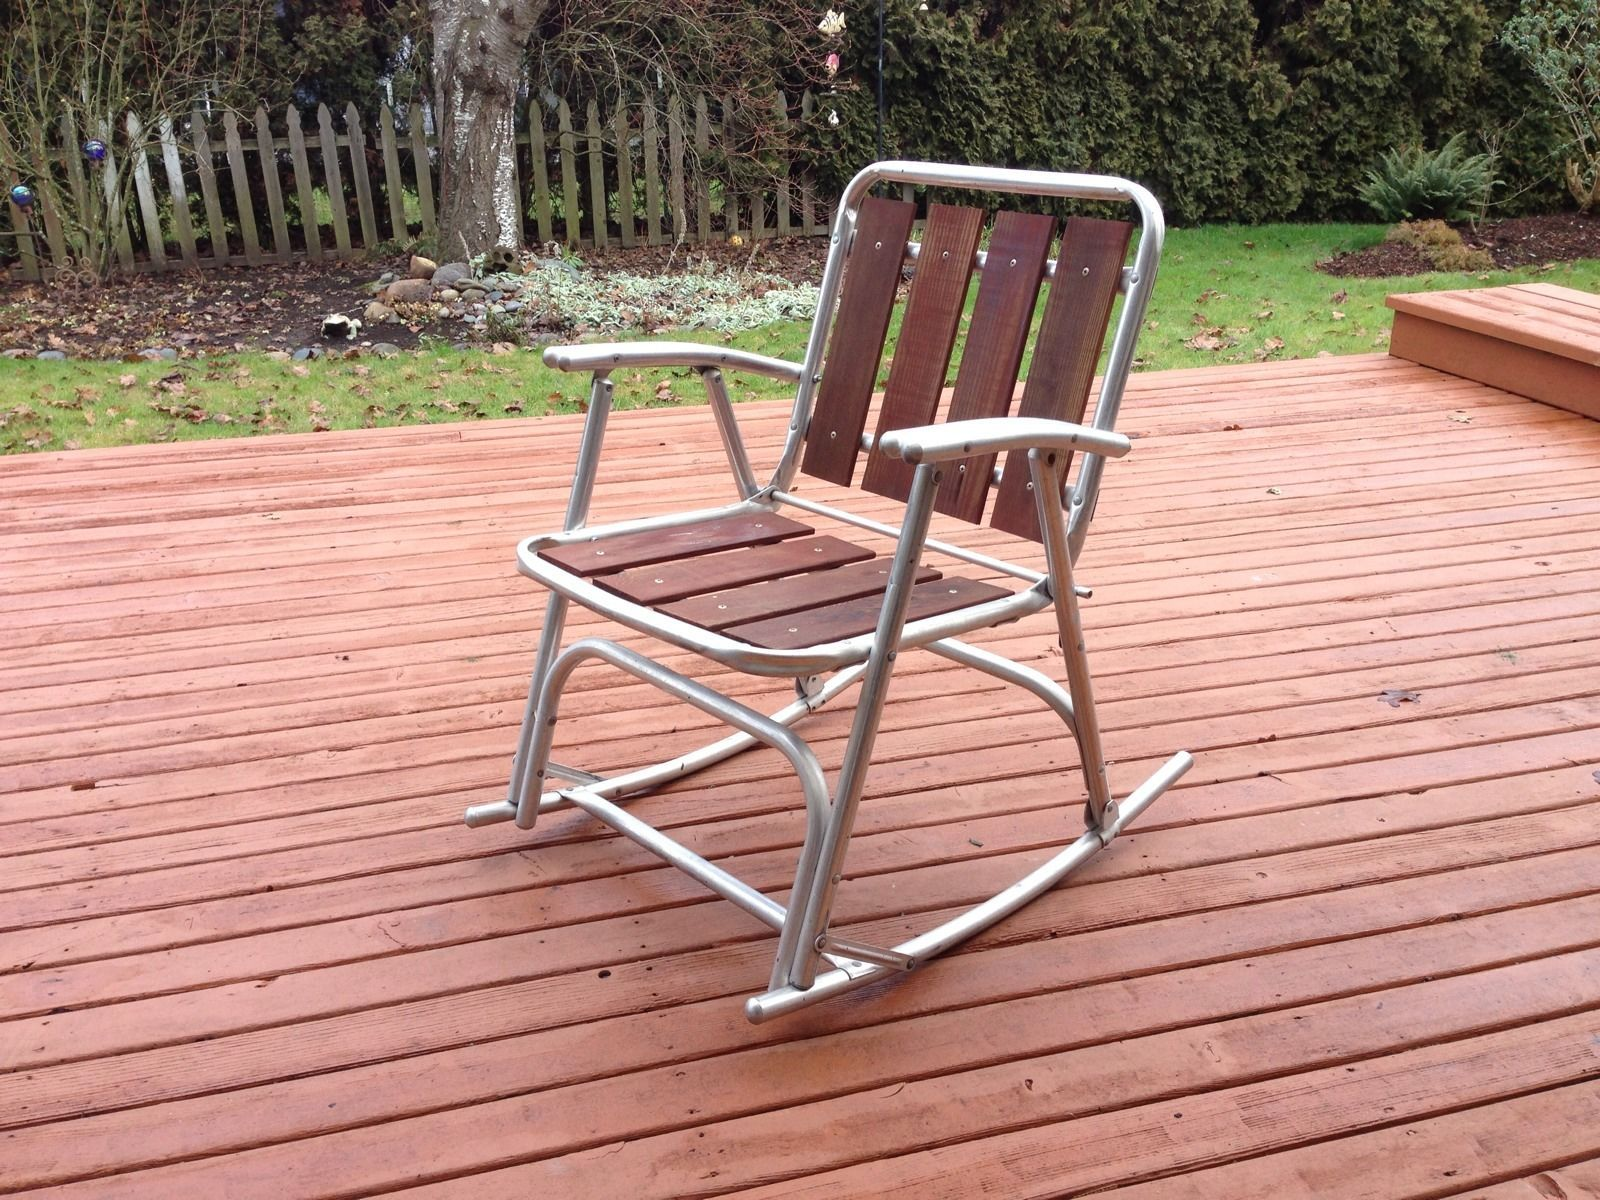 Aluminum Webbed Lawn Chairs 24 Inch 1 Vtg Redwood Outdoor Patio Porch Rocking